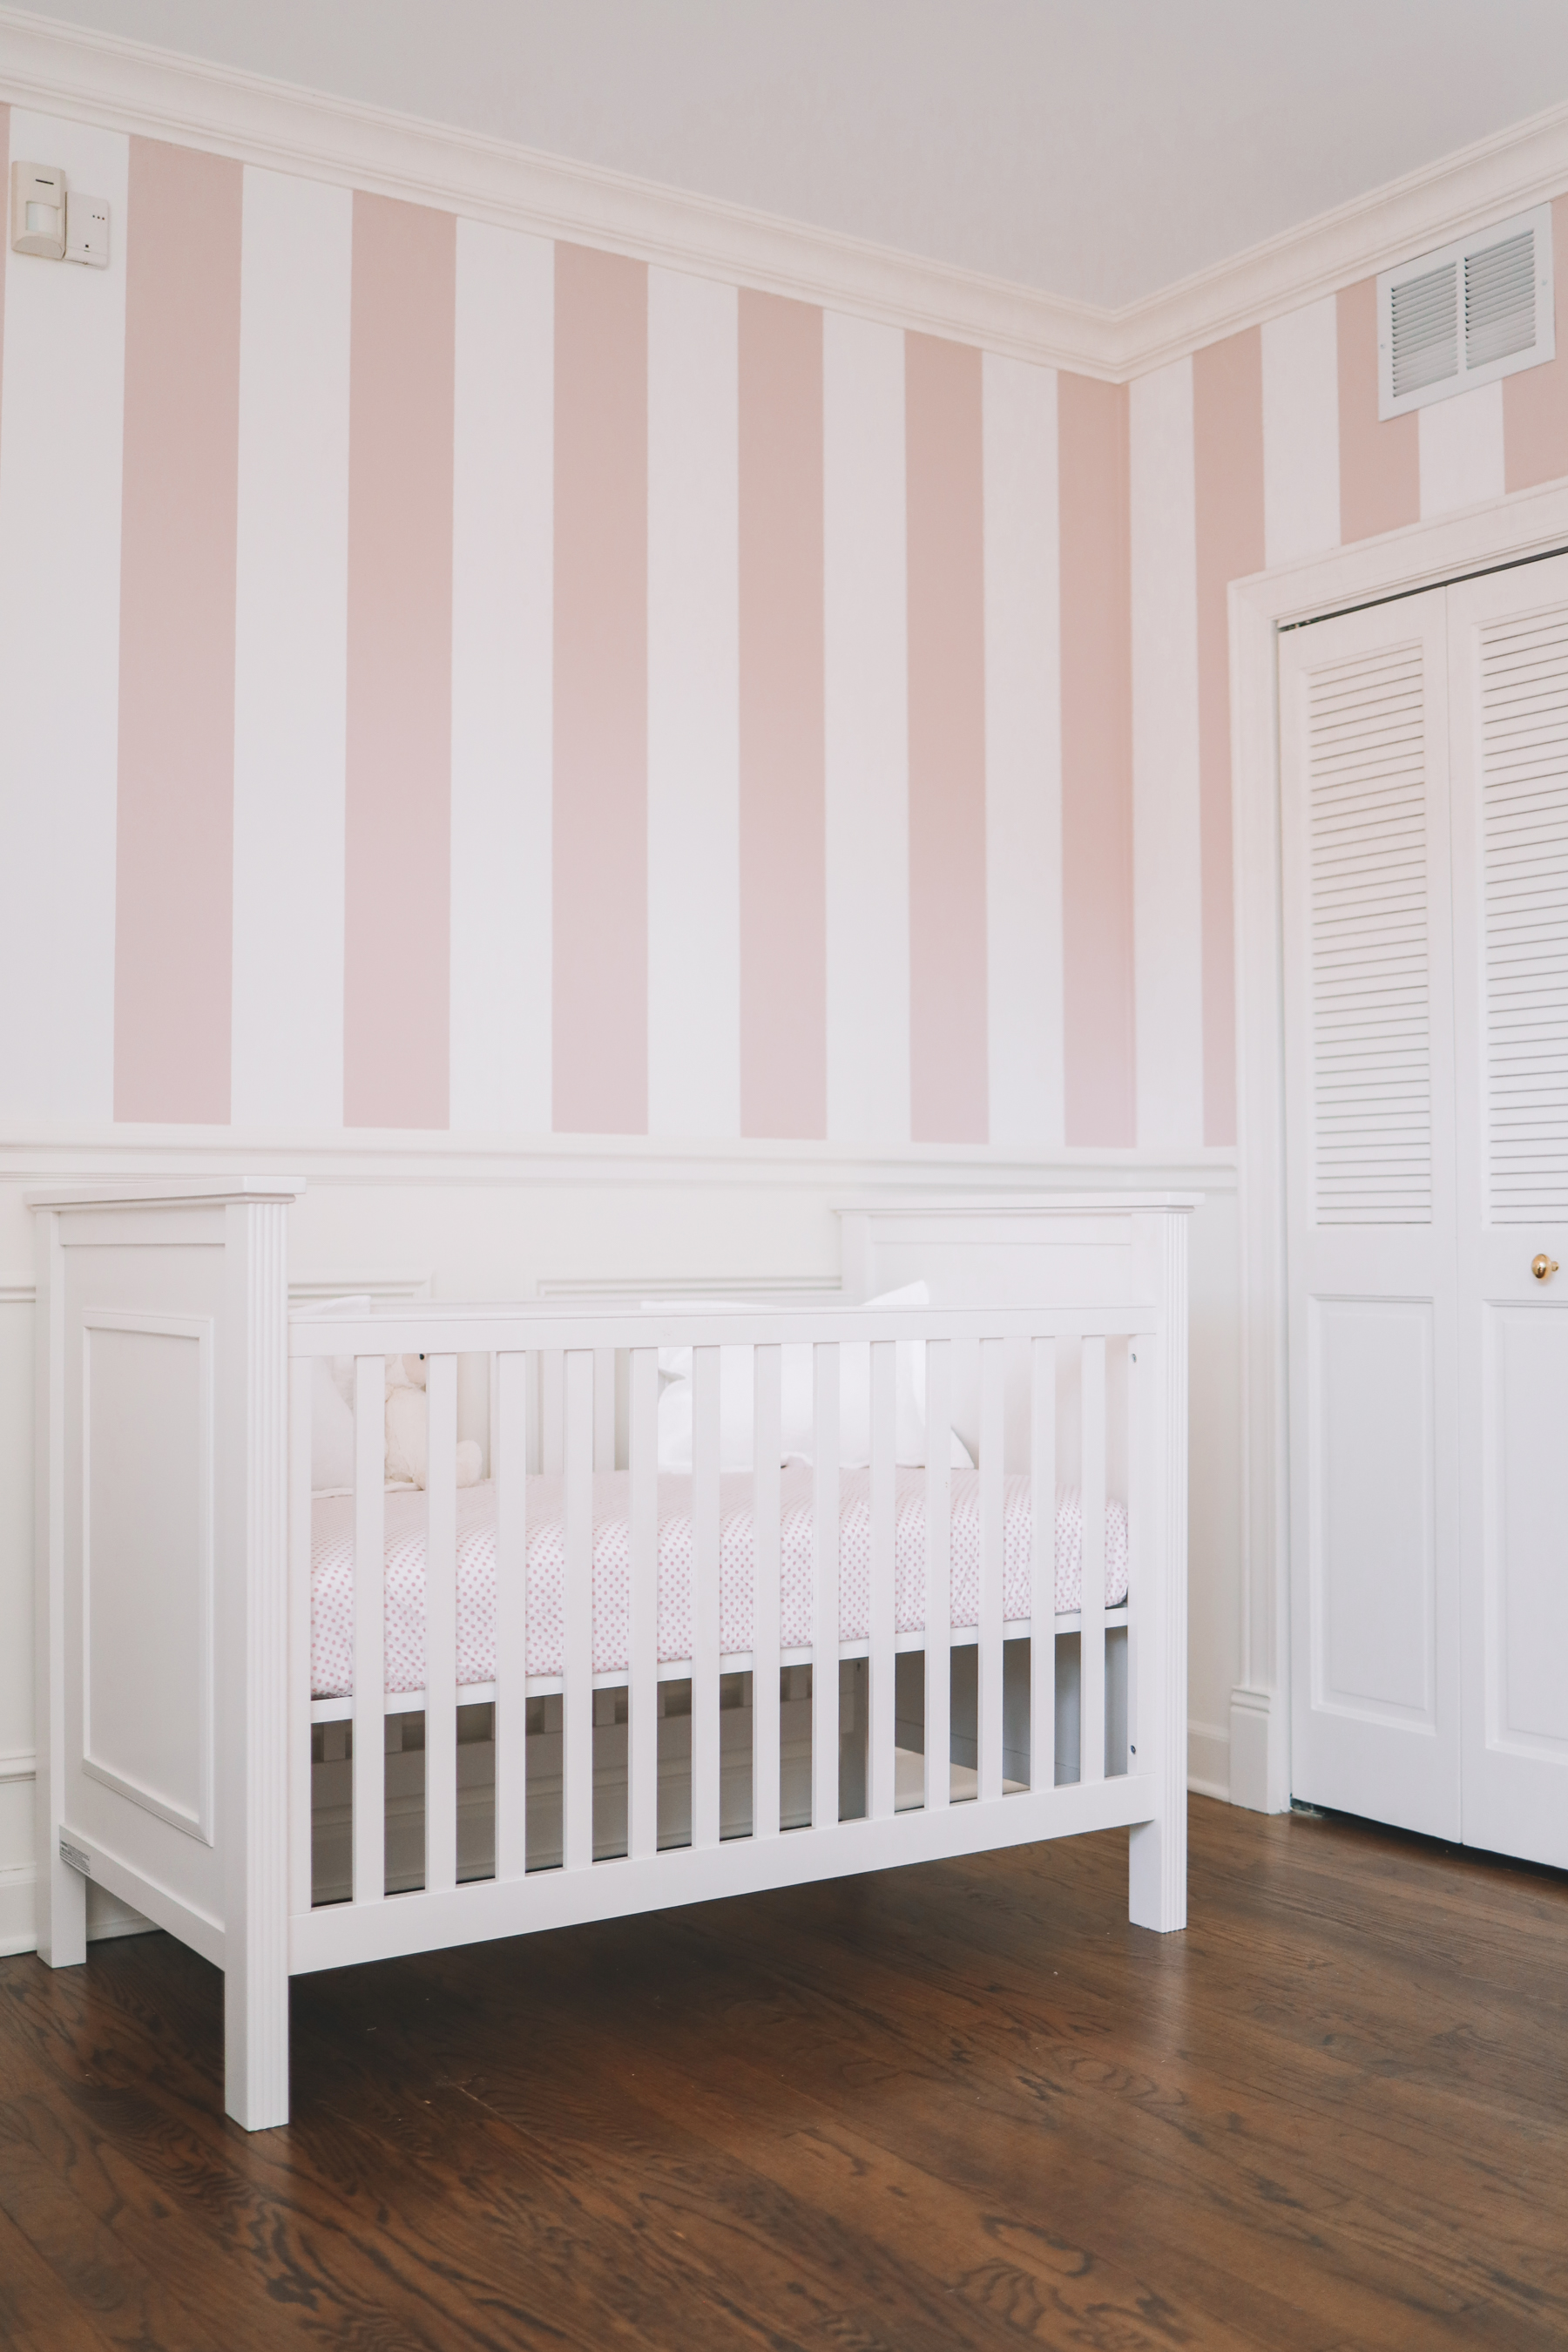 Preppy Girls Room - A white crib with pink and white stripped wallpaper